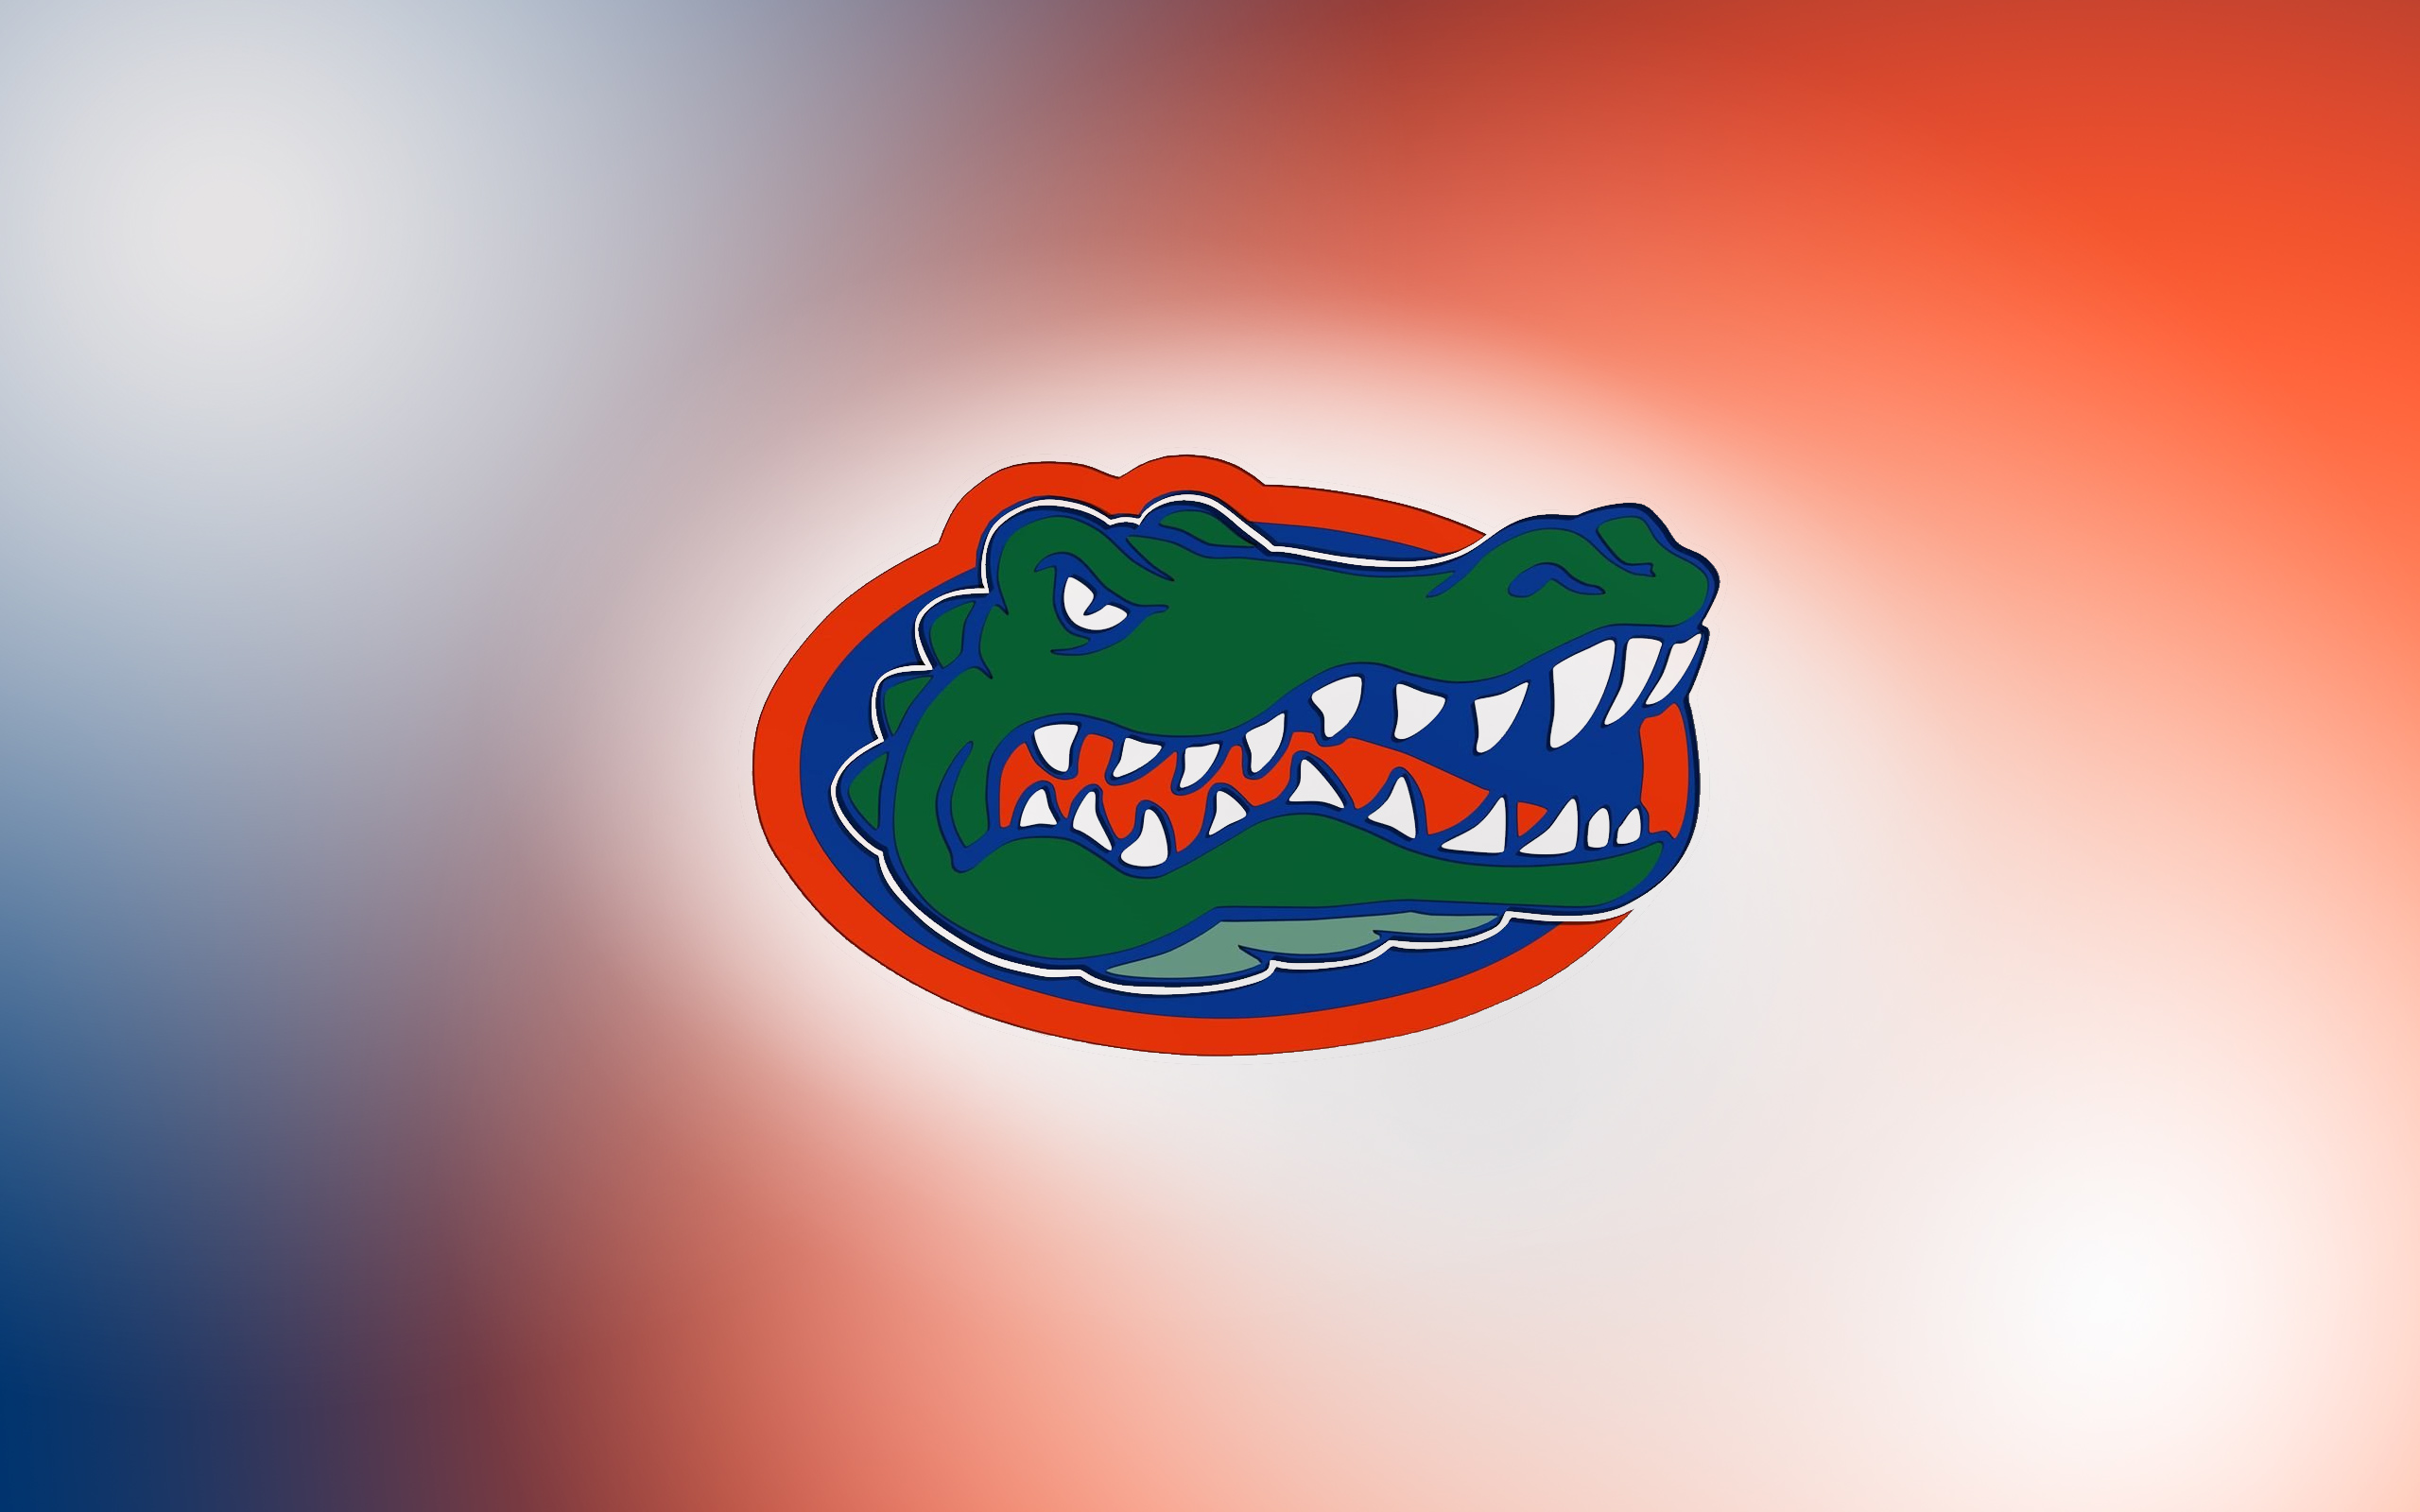 University Of Florida Wallpaper